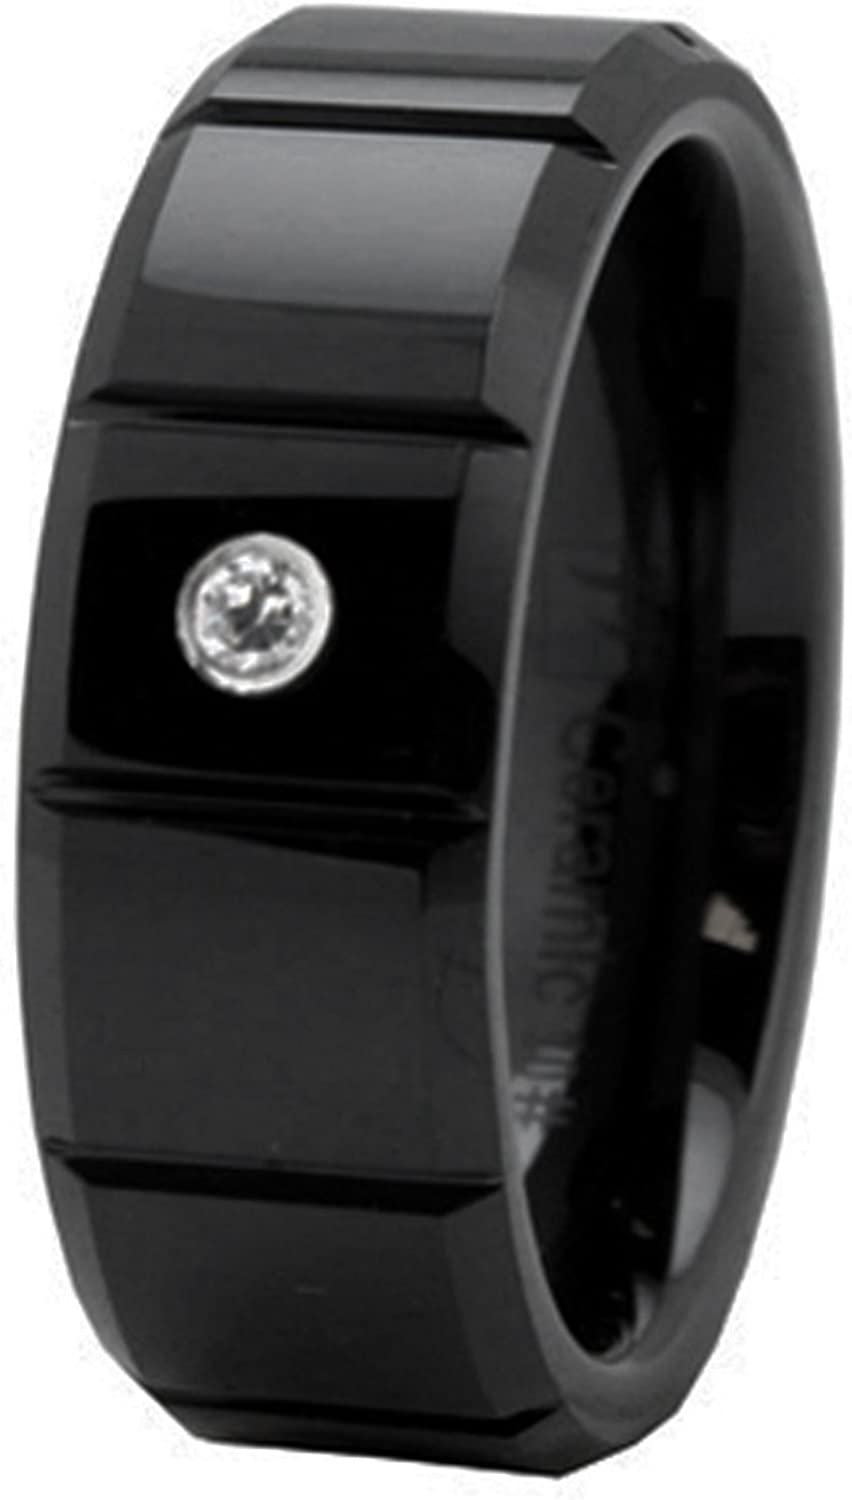 Payless Outlet 8 MM Black Ceramic Beveled Edge Groove CZ Wedding Band Ring